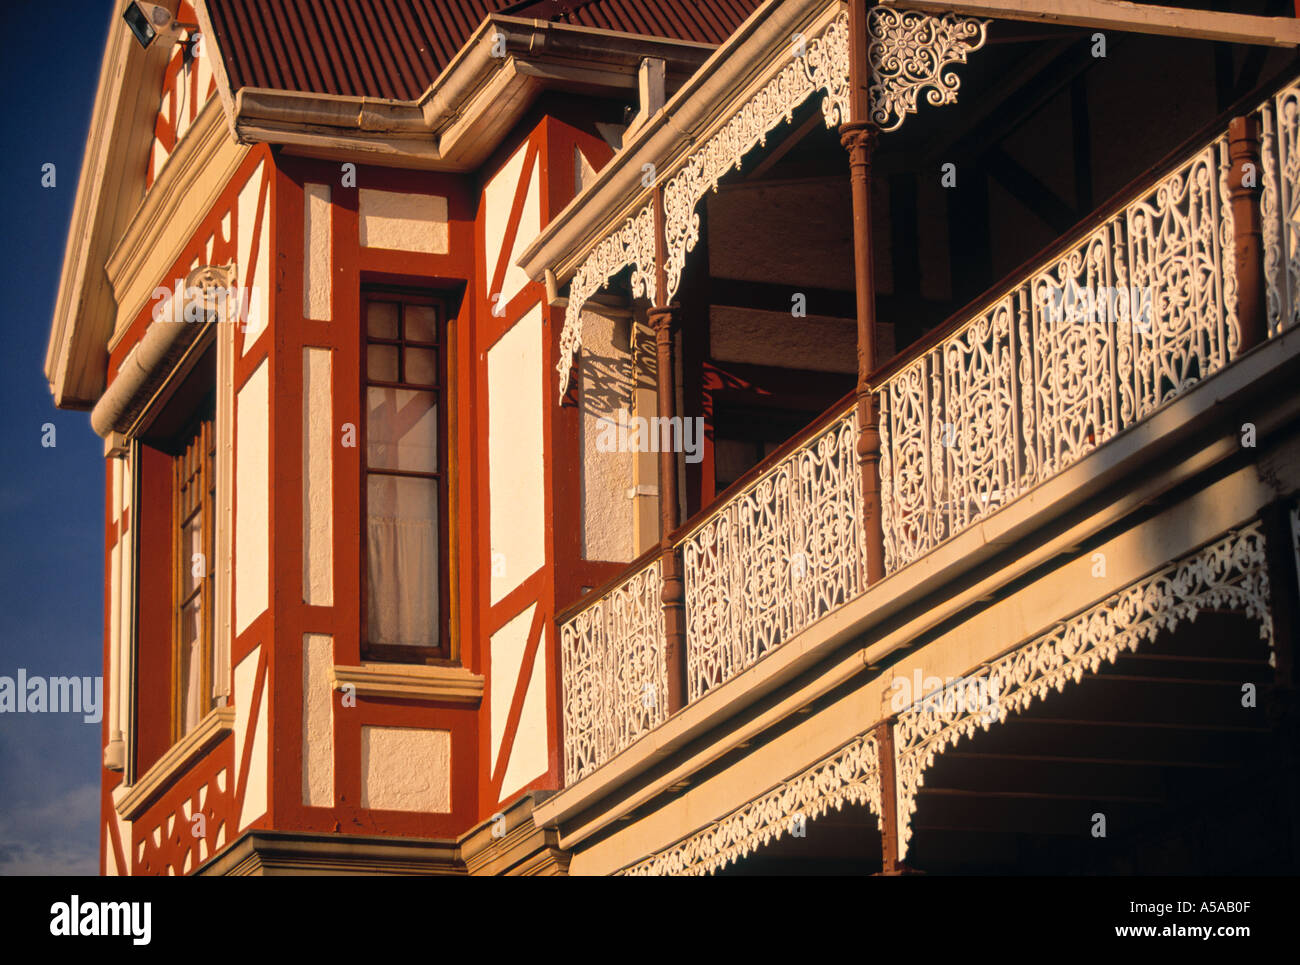 Foster House, Oudtshoorn, Klein Karoo, Cape Province, South Africa - Stock Image